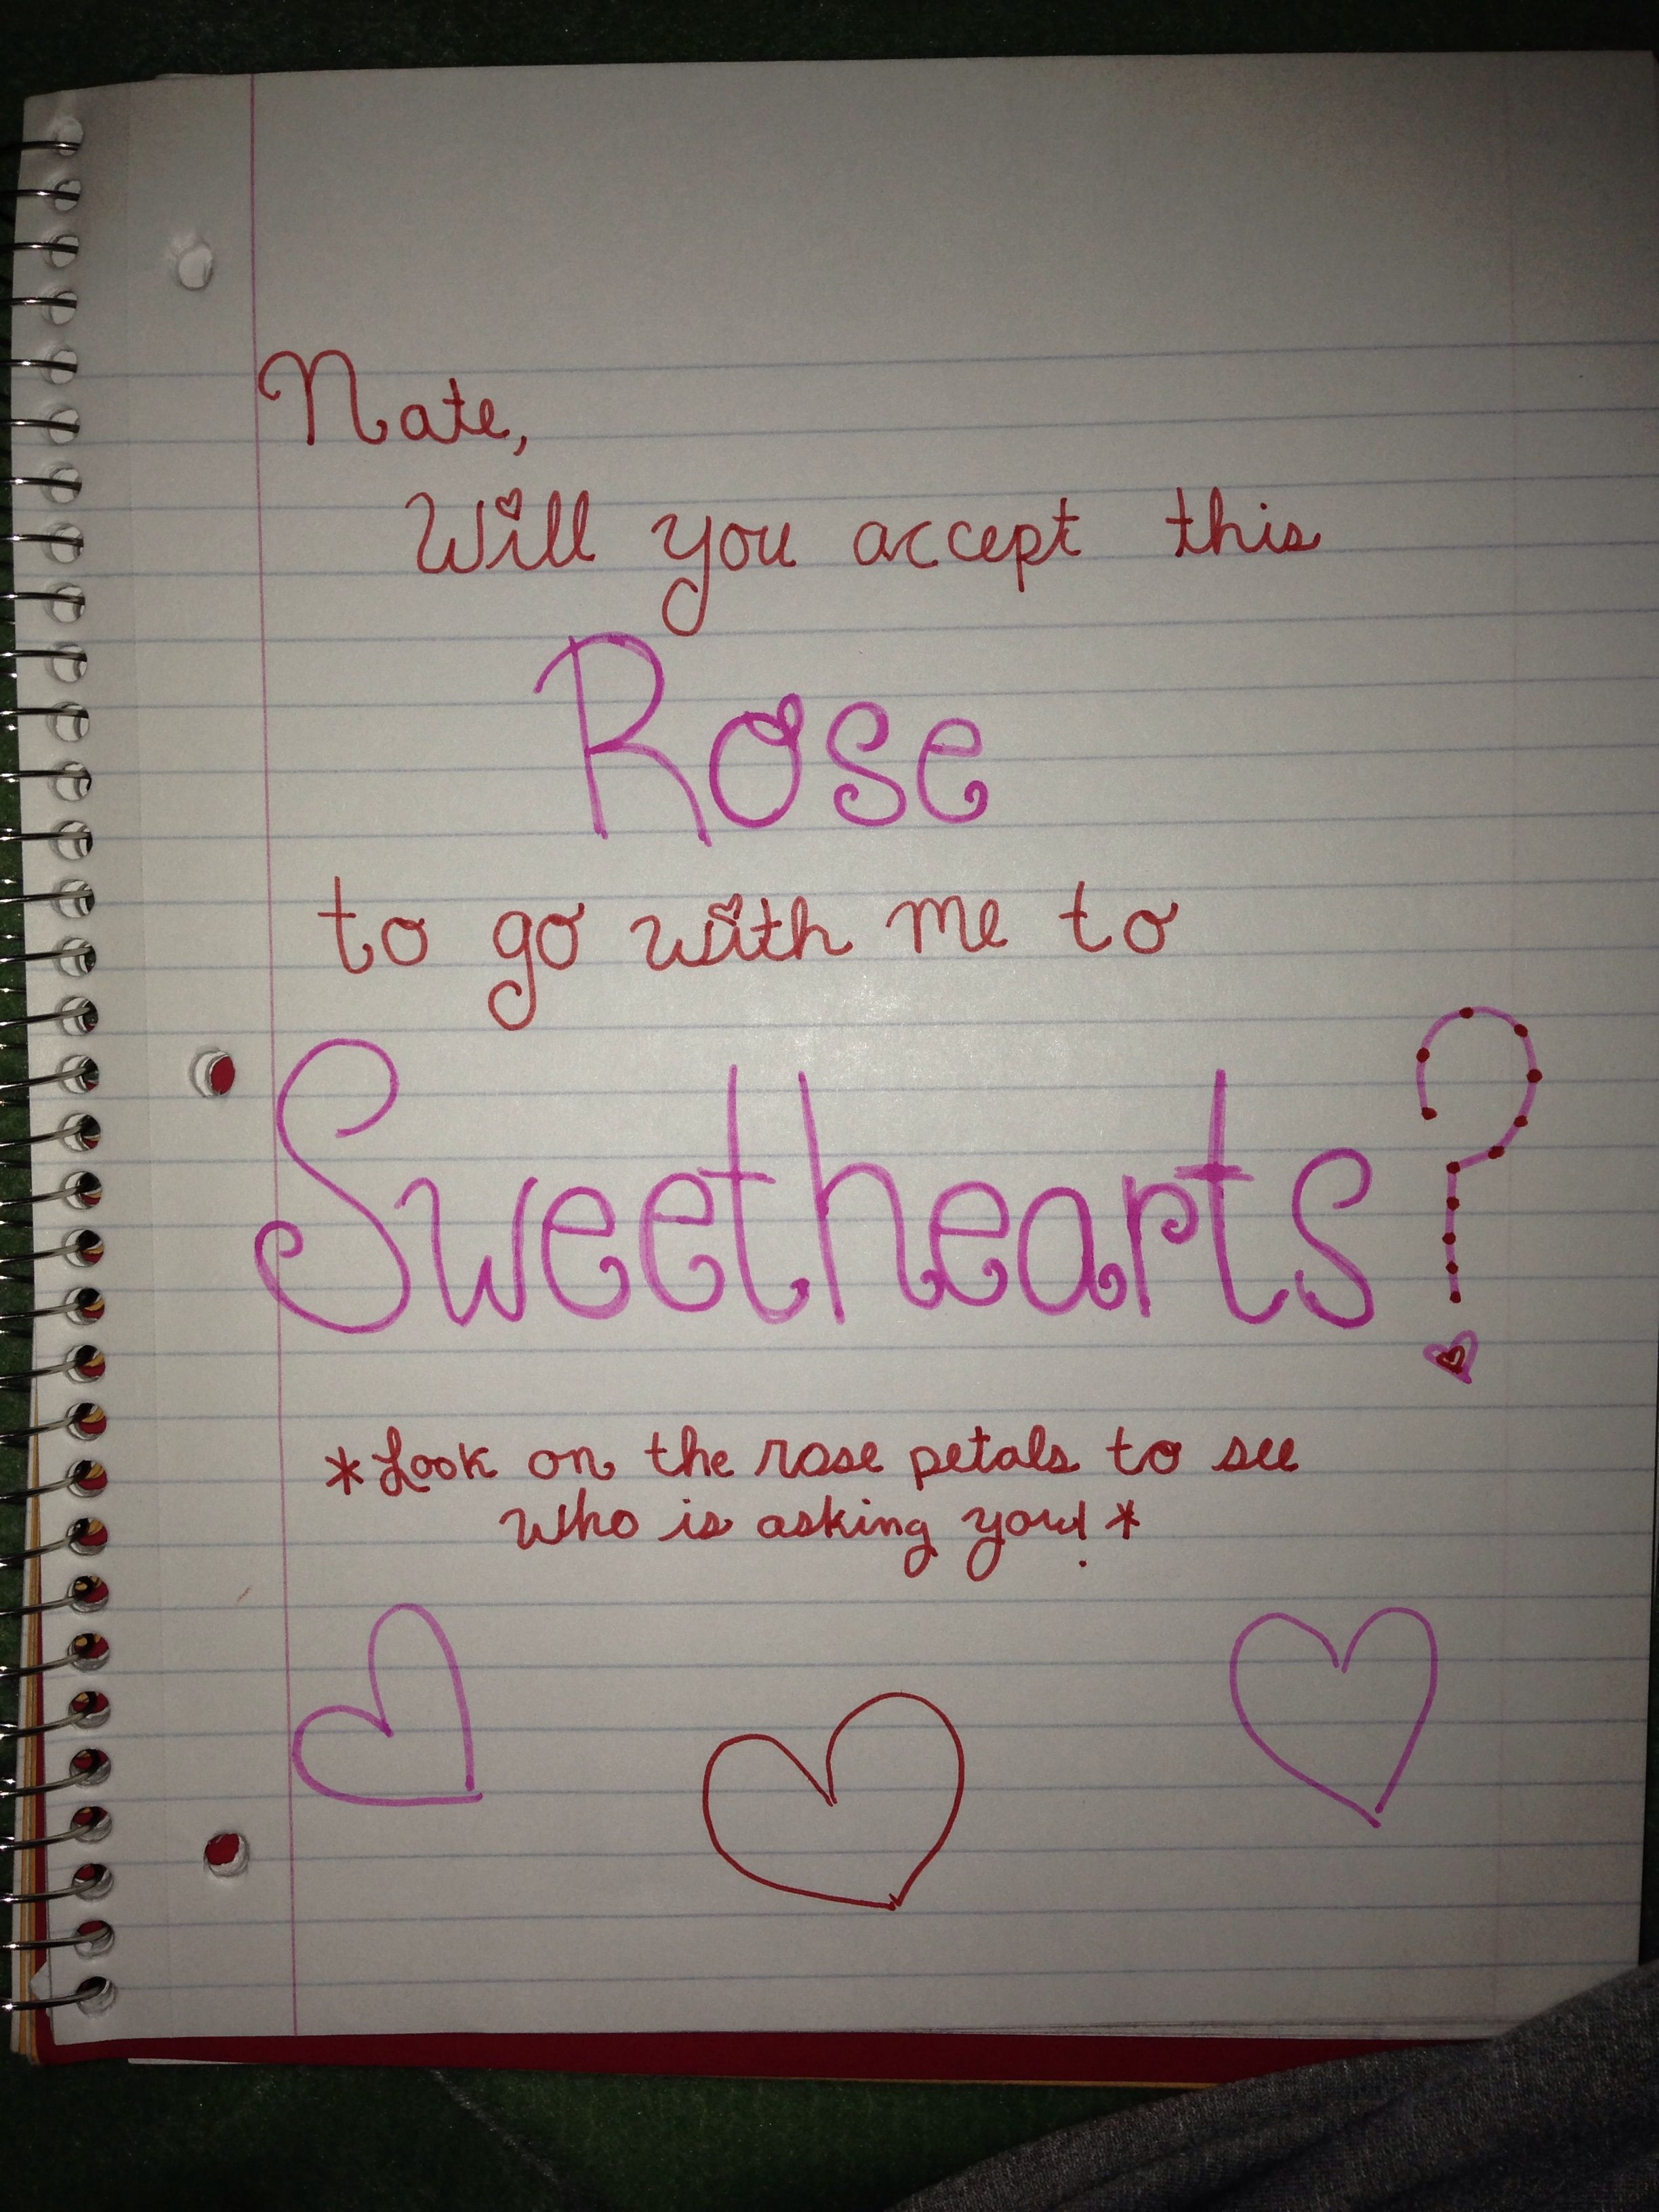 The best way to ask a boy out